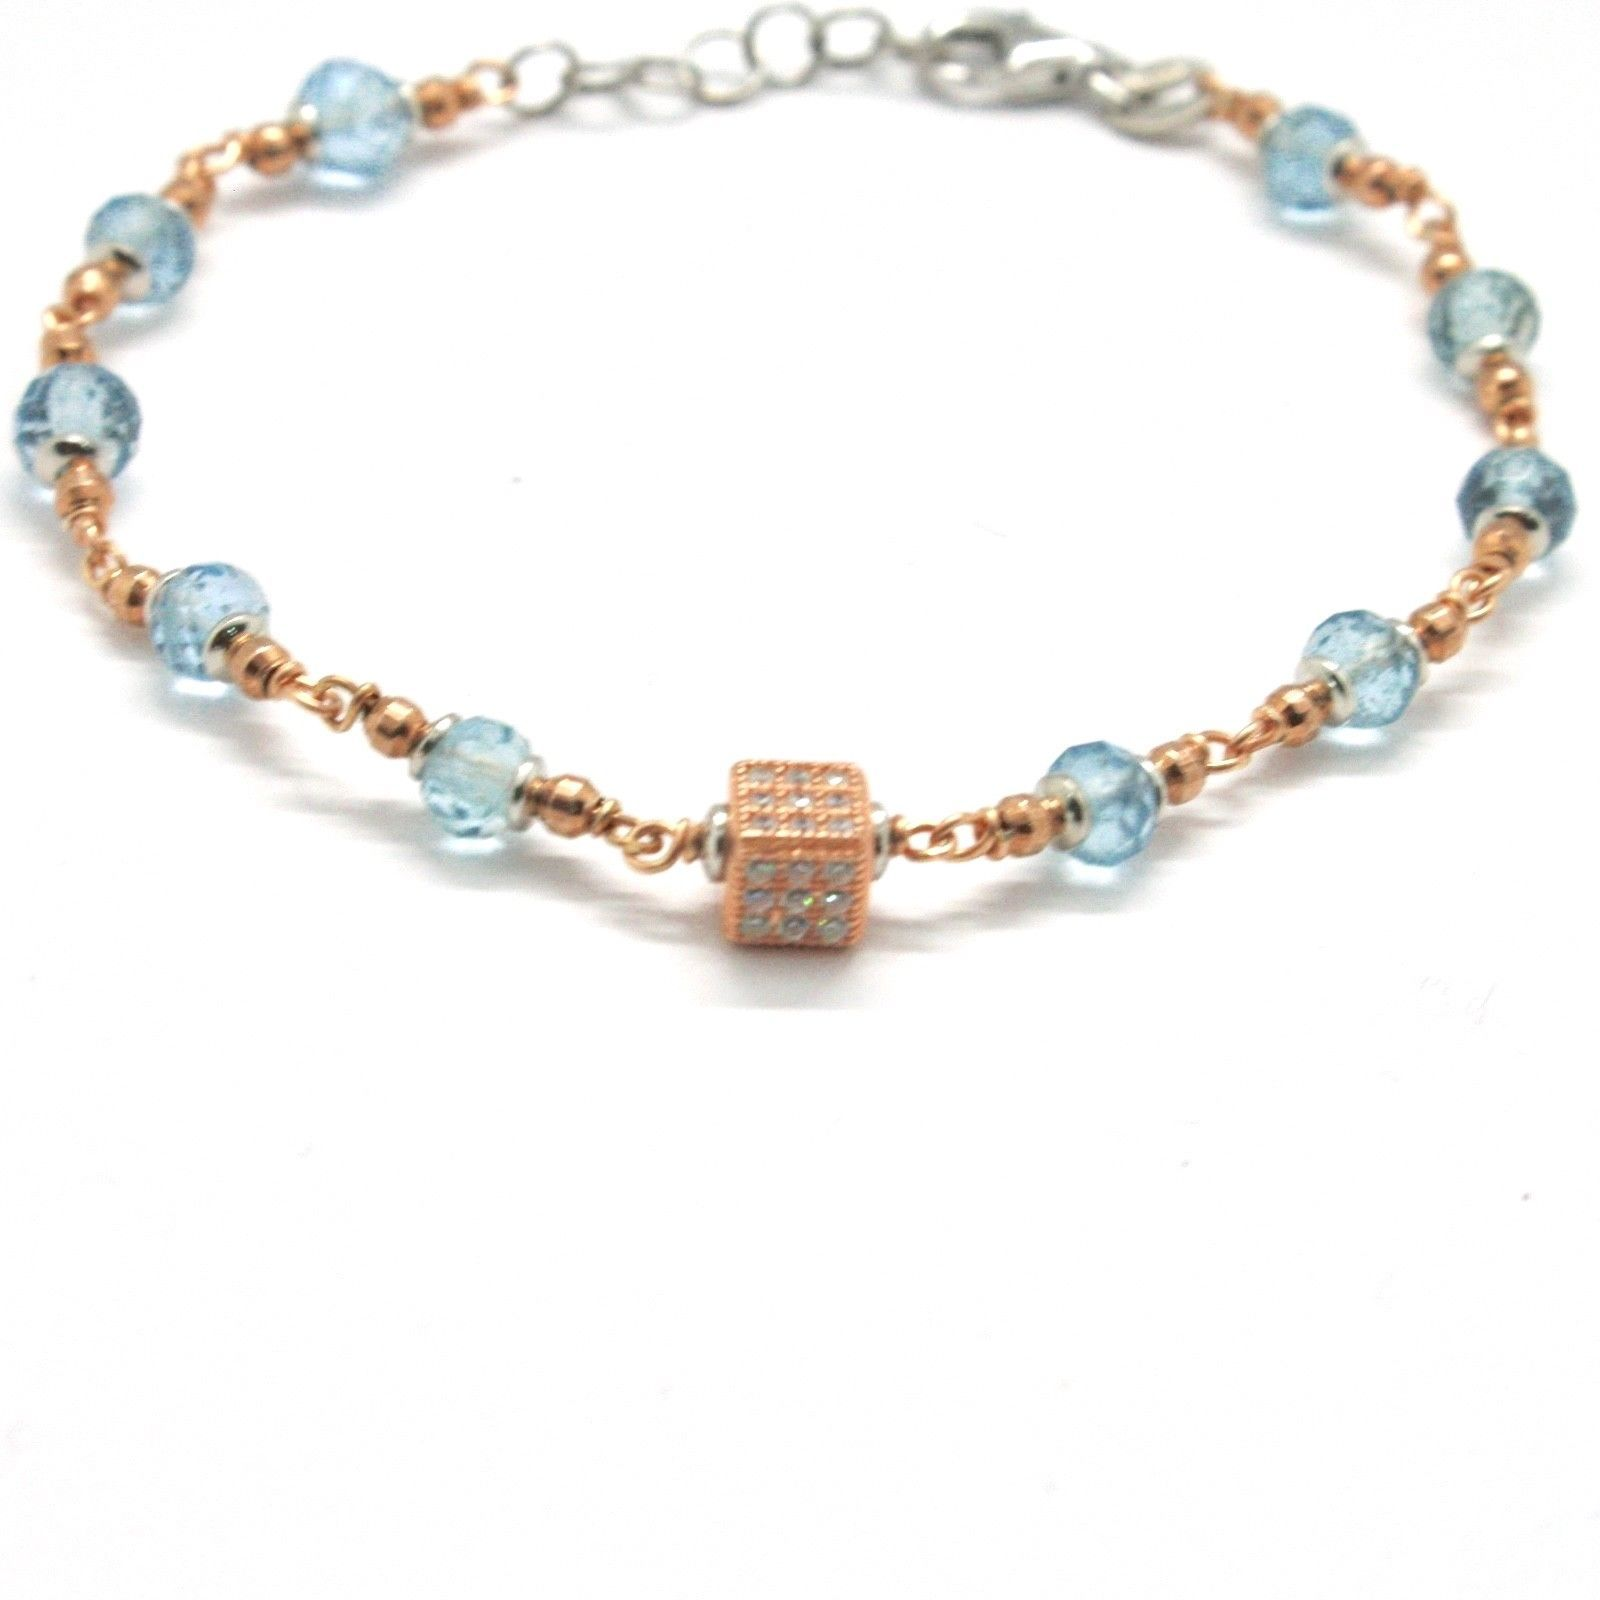 Silver Bracelet 925 Laminated in Rose Gold with Aquamarine and Zircon Cubic image 3